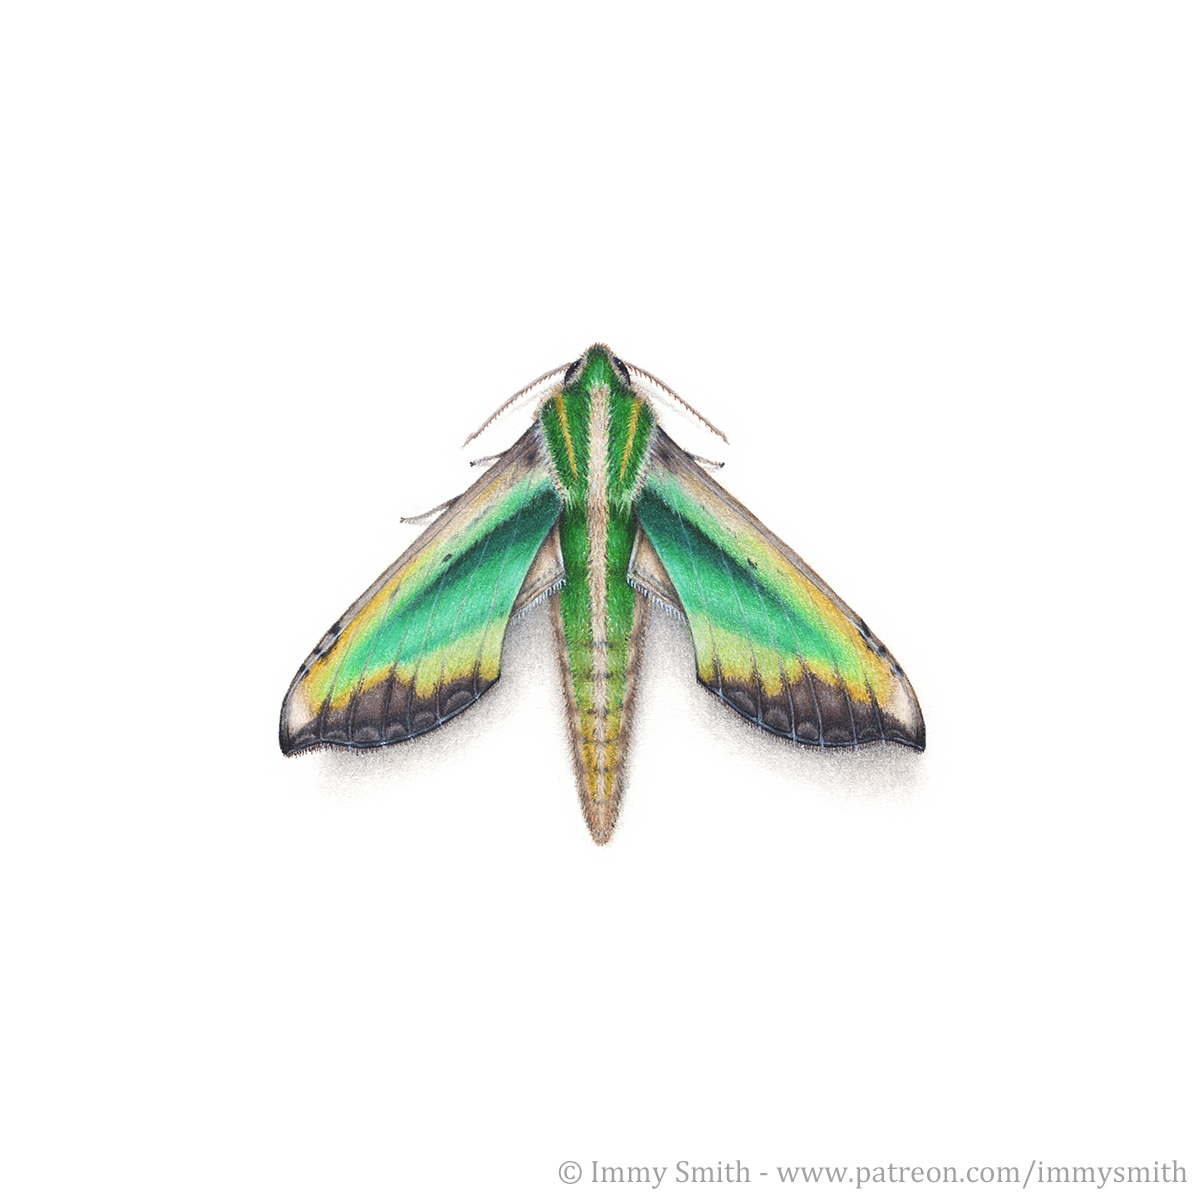 Image description; the green and brown hawkmoth Pergesa acteus, drawn in colour pencil.